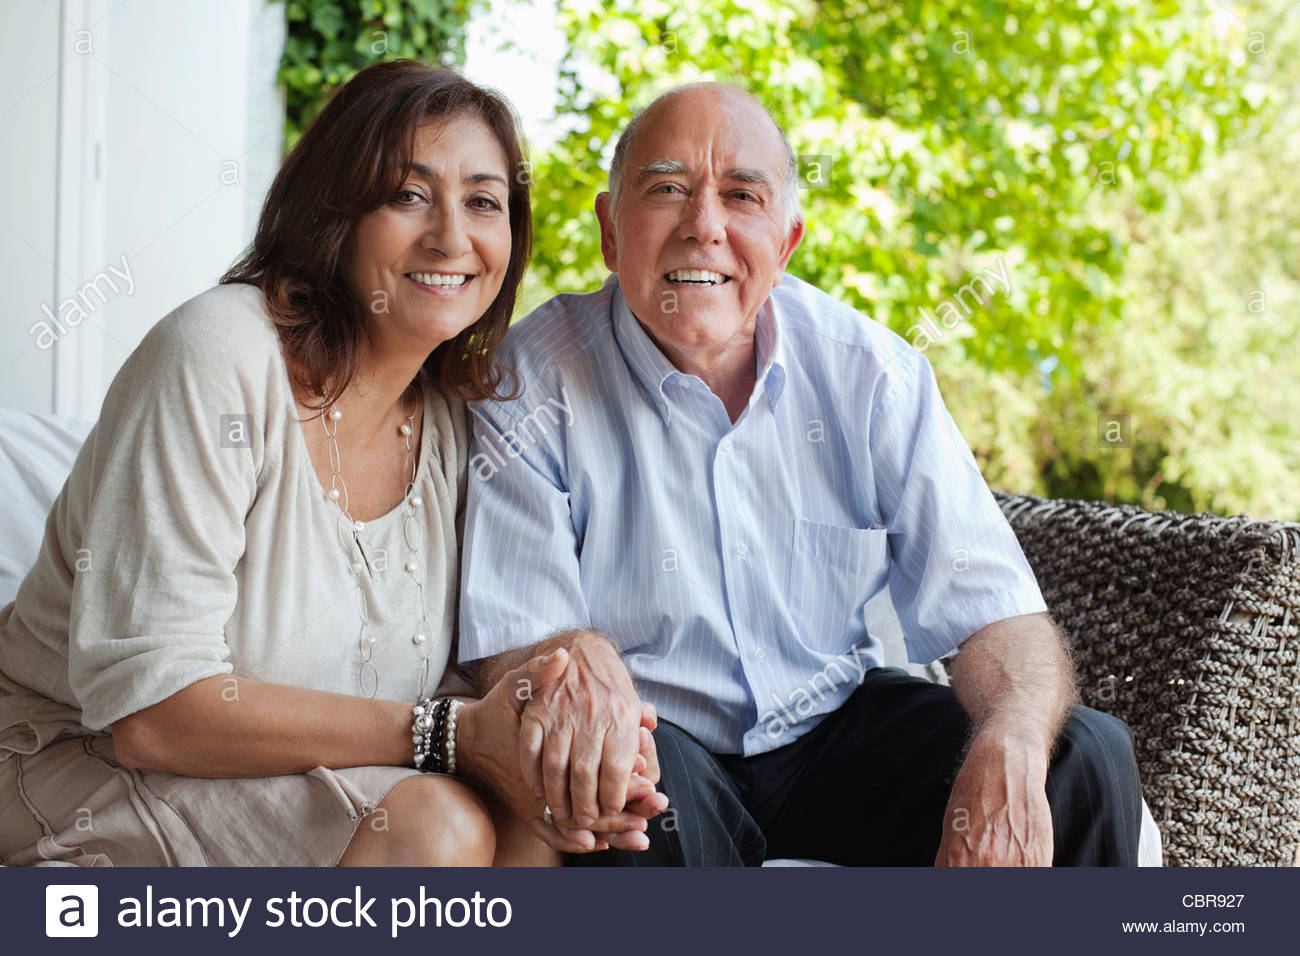 Couple holding hands on patio - Stock Image